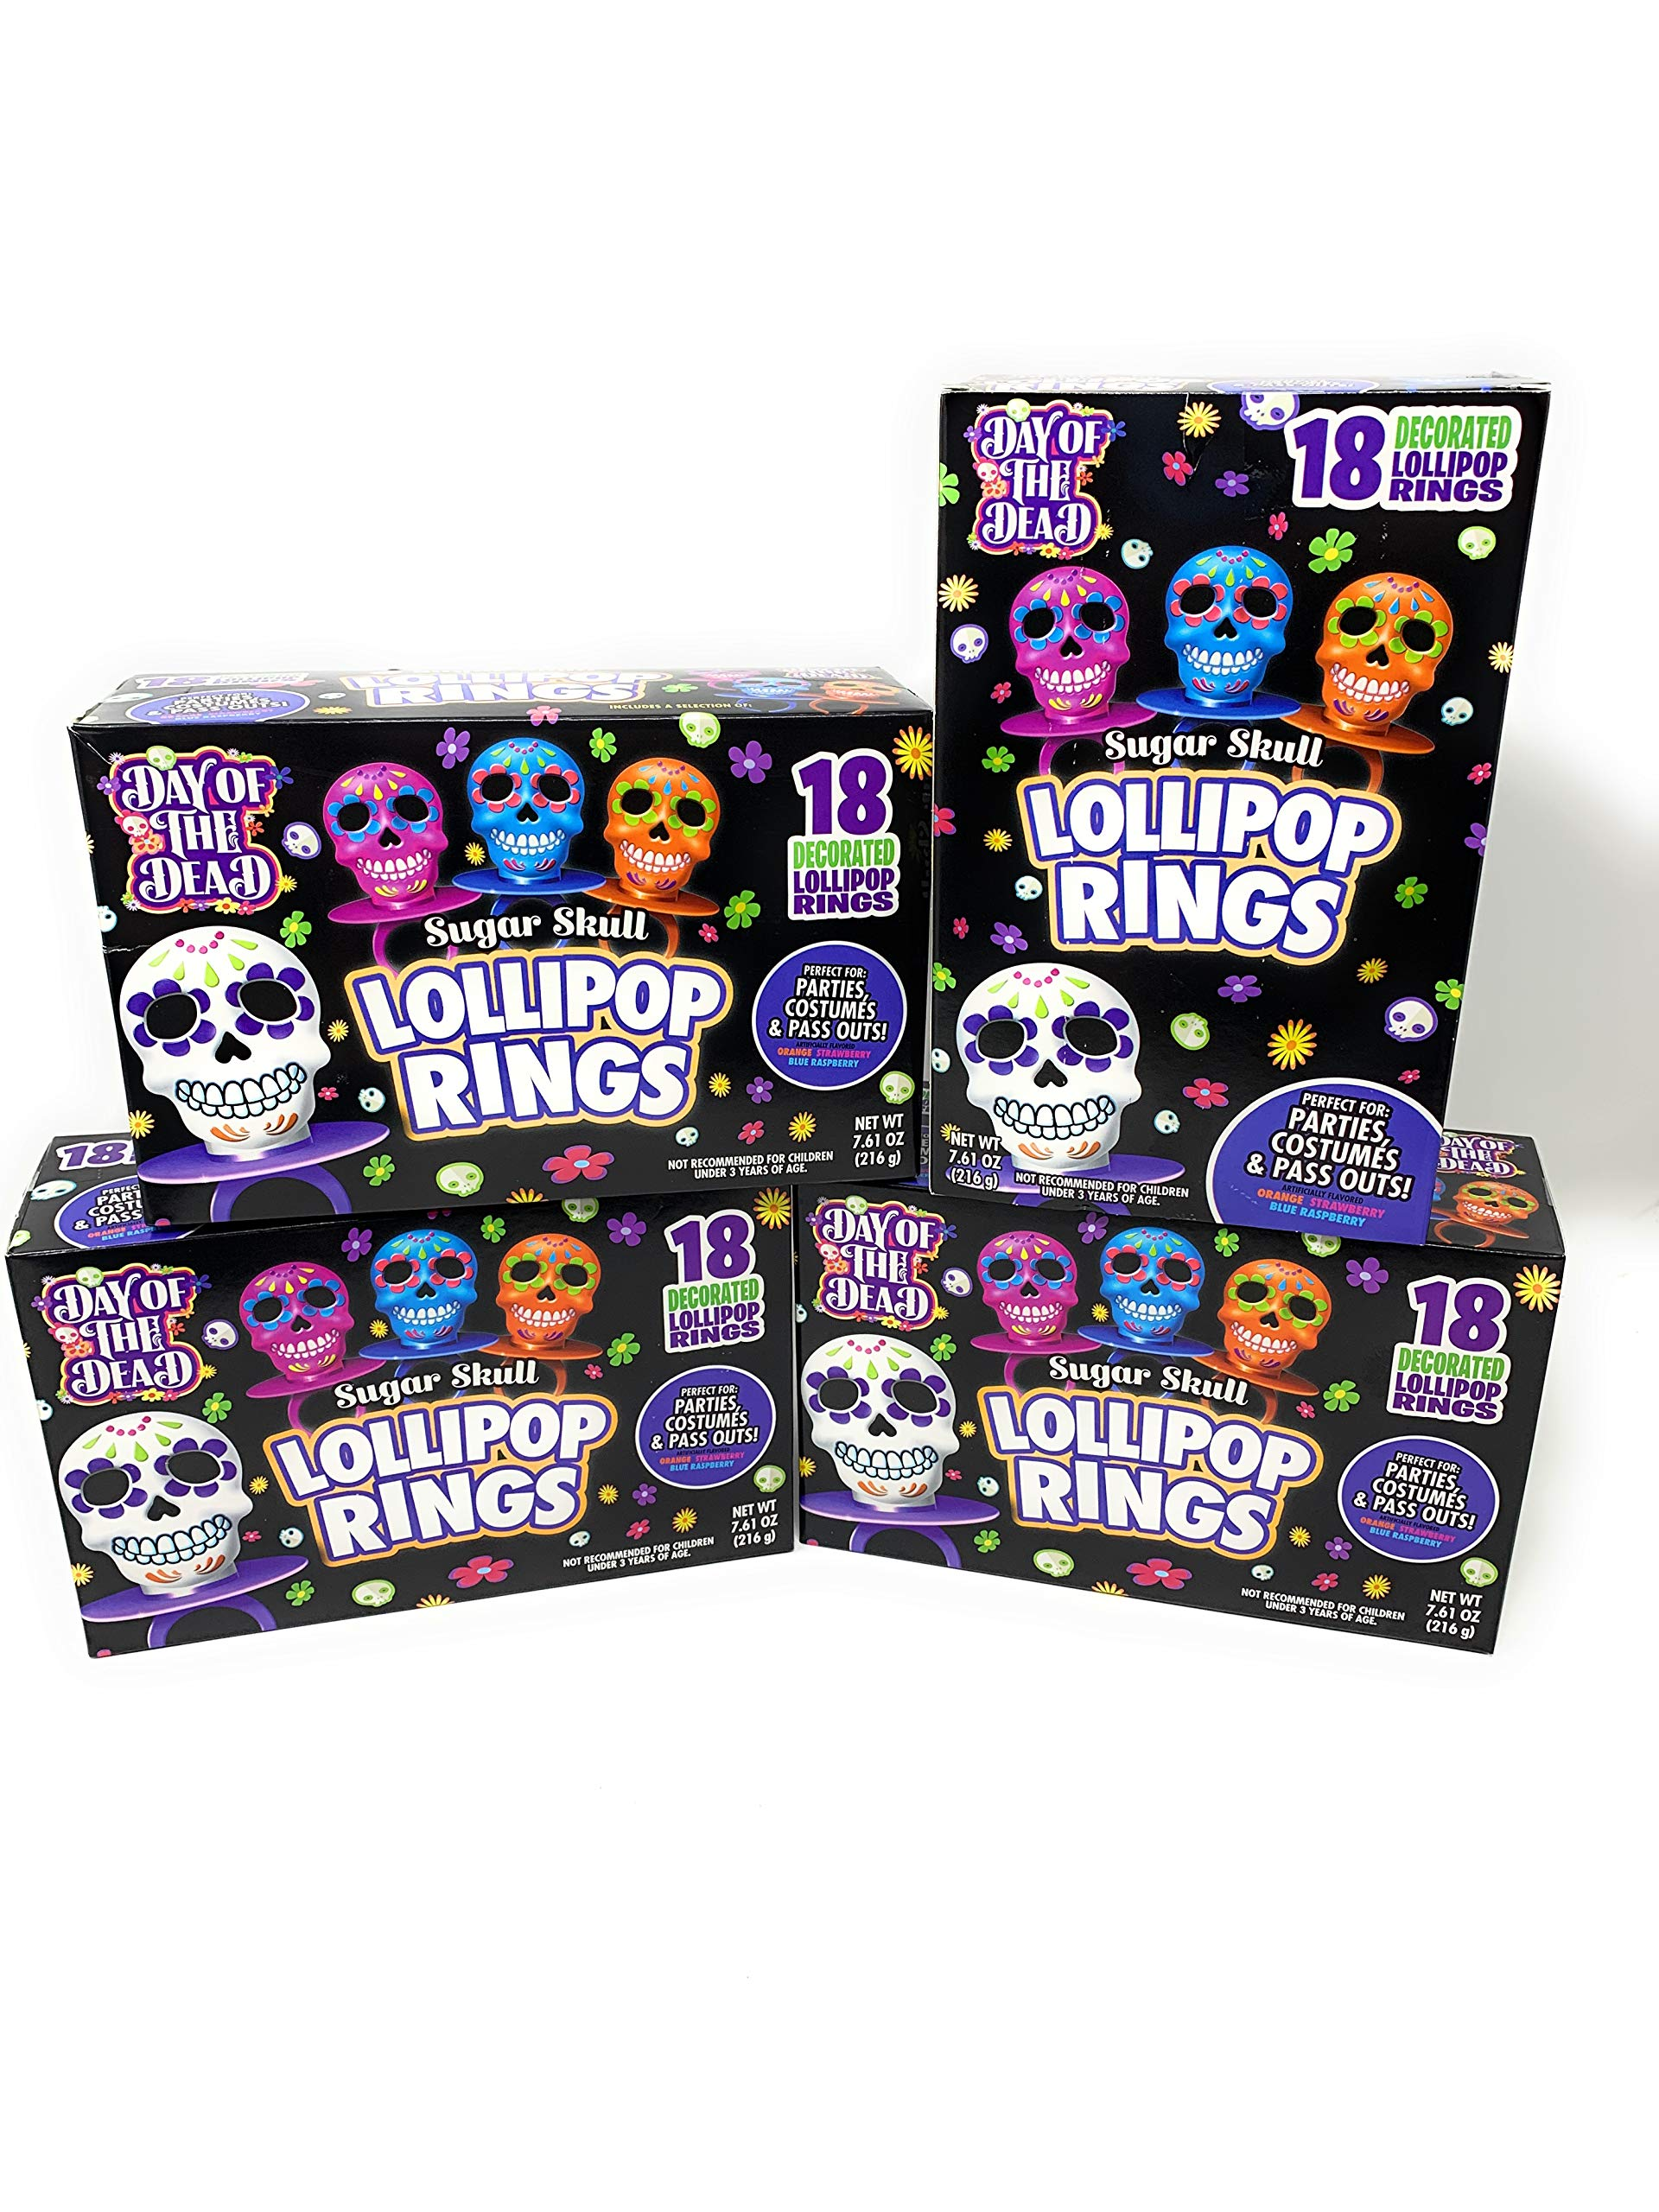 Halloween Day of the Dead Sugar Skull Lollipop Rings Candy, 18 Count Per Box (4 Boxes) by Imaginings